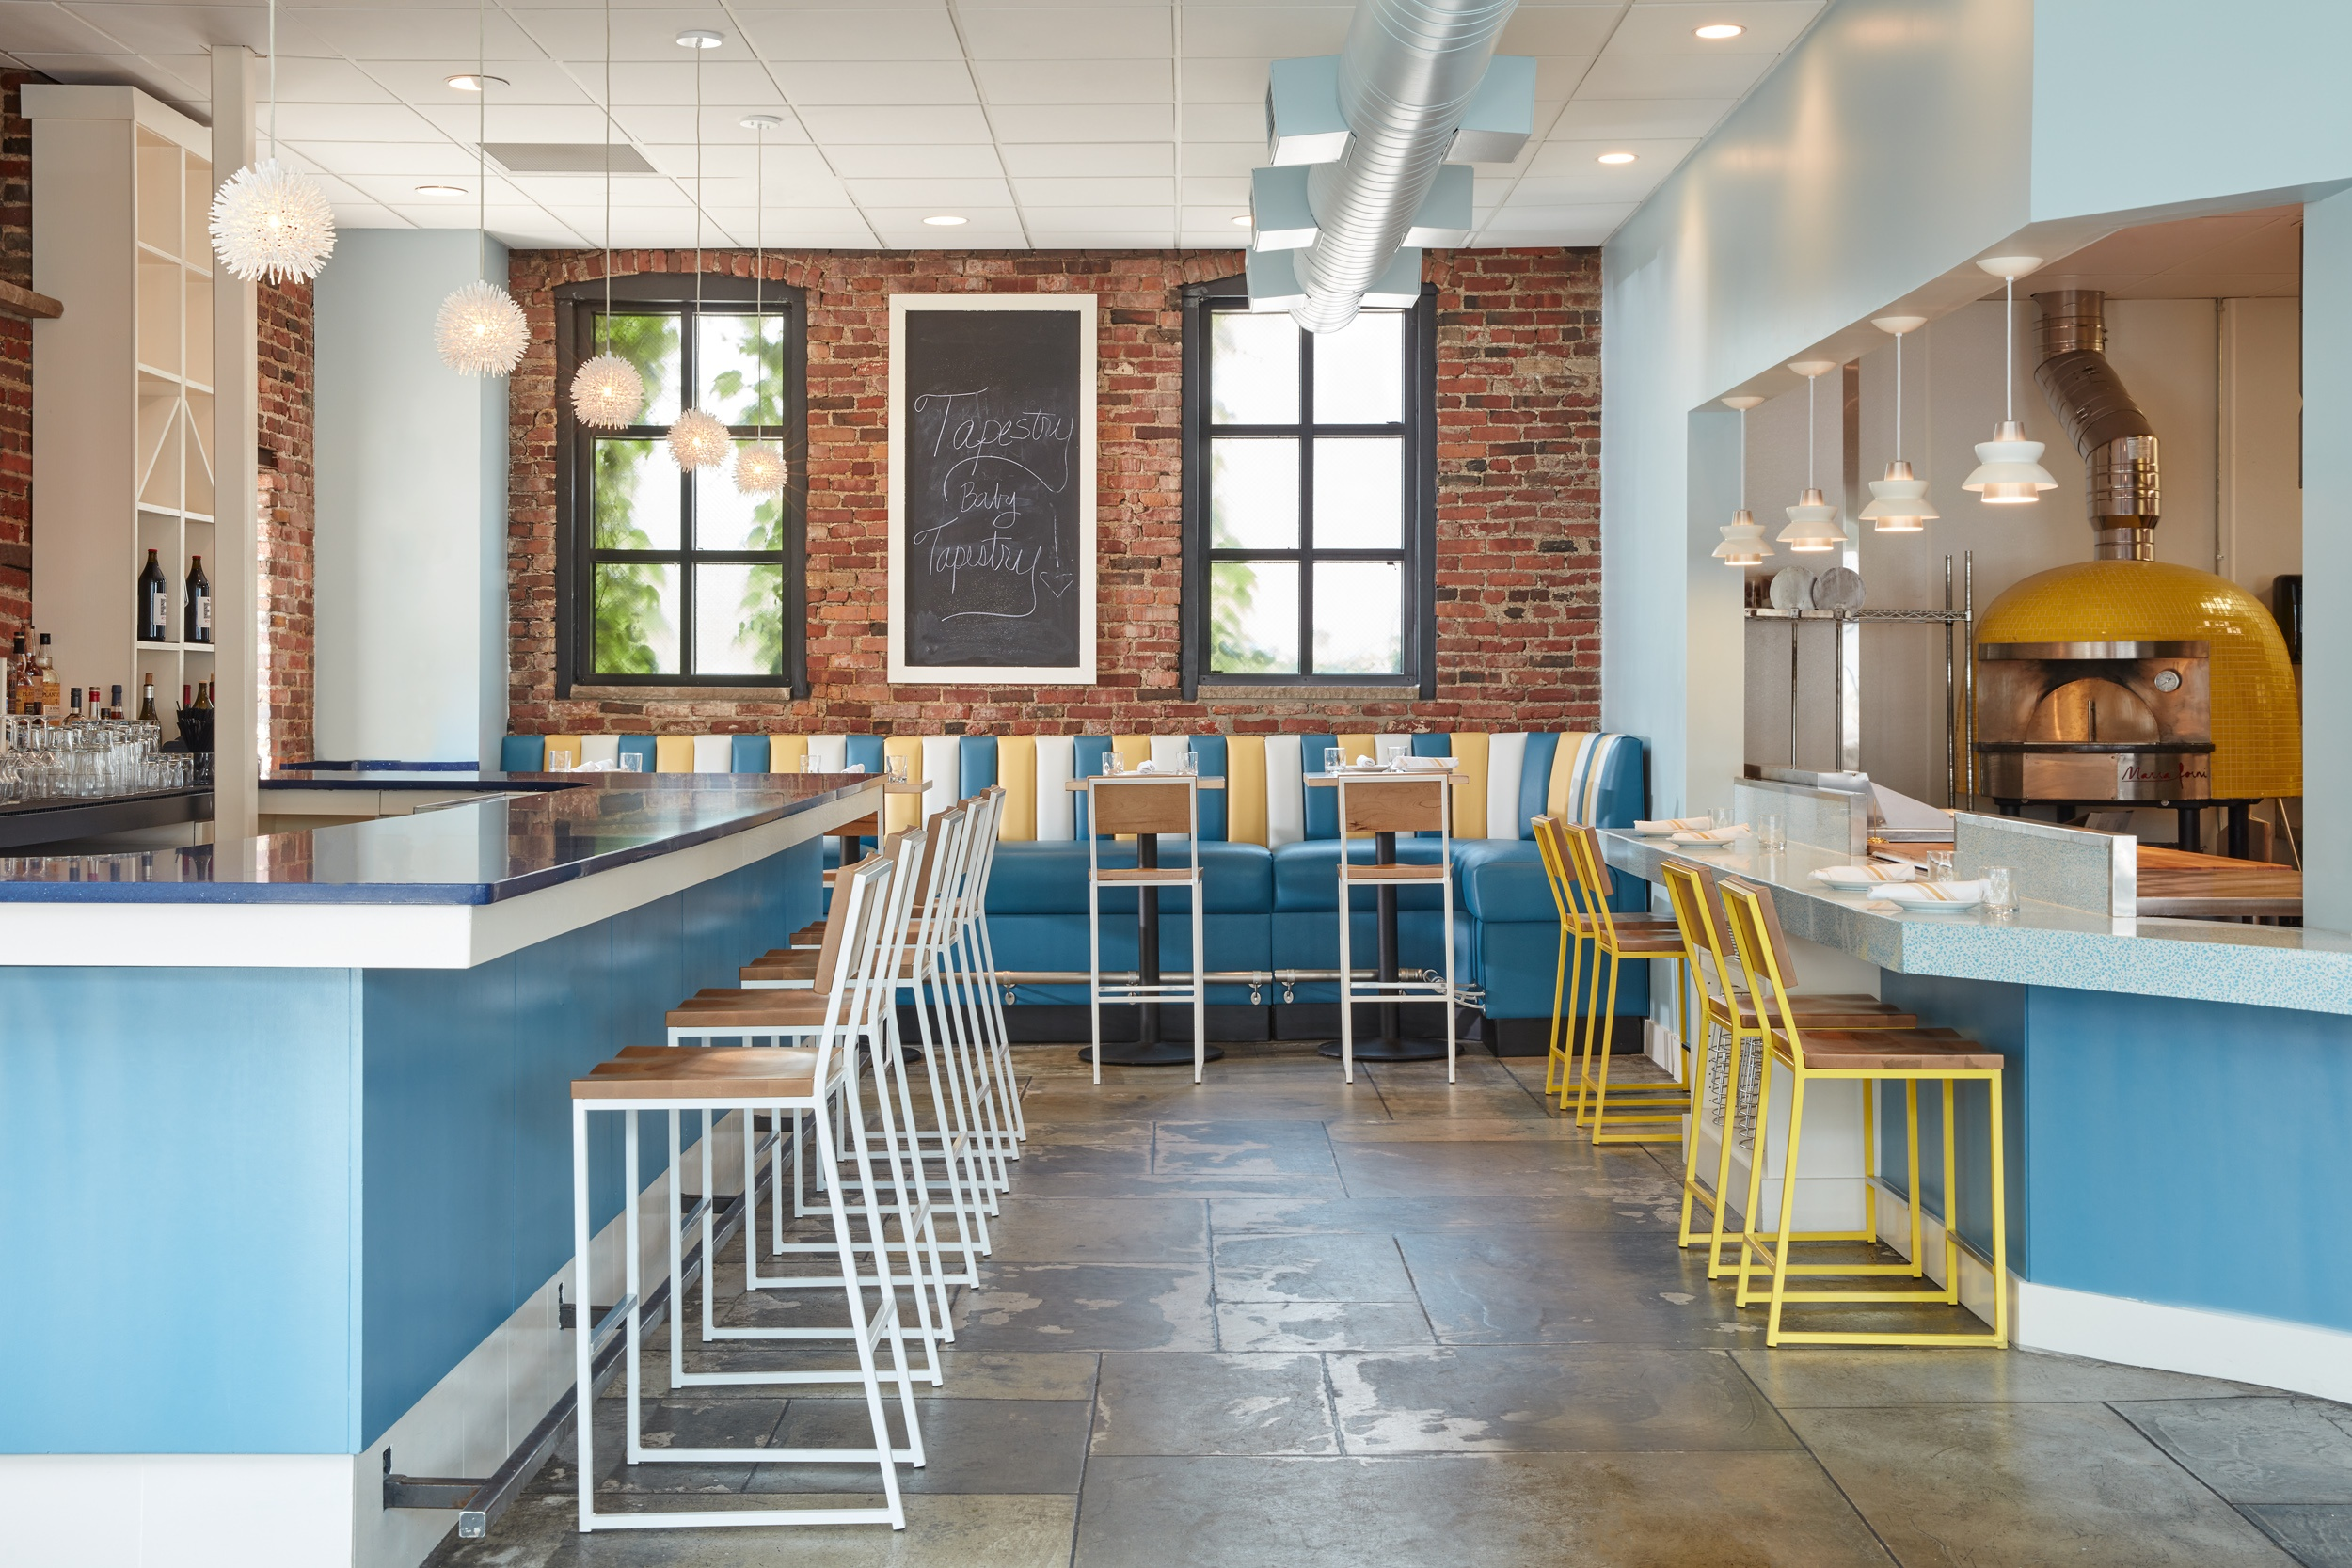 Tapestry restaurant featuring modern barstools by Grand Rapids Chair Co